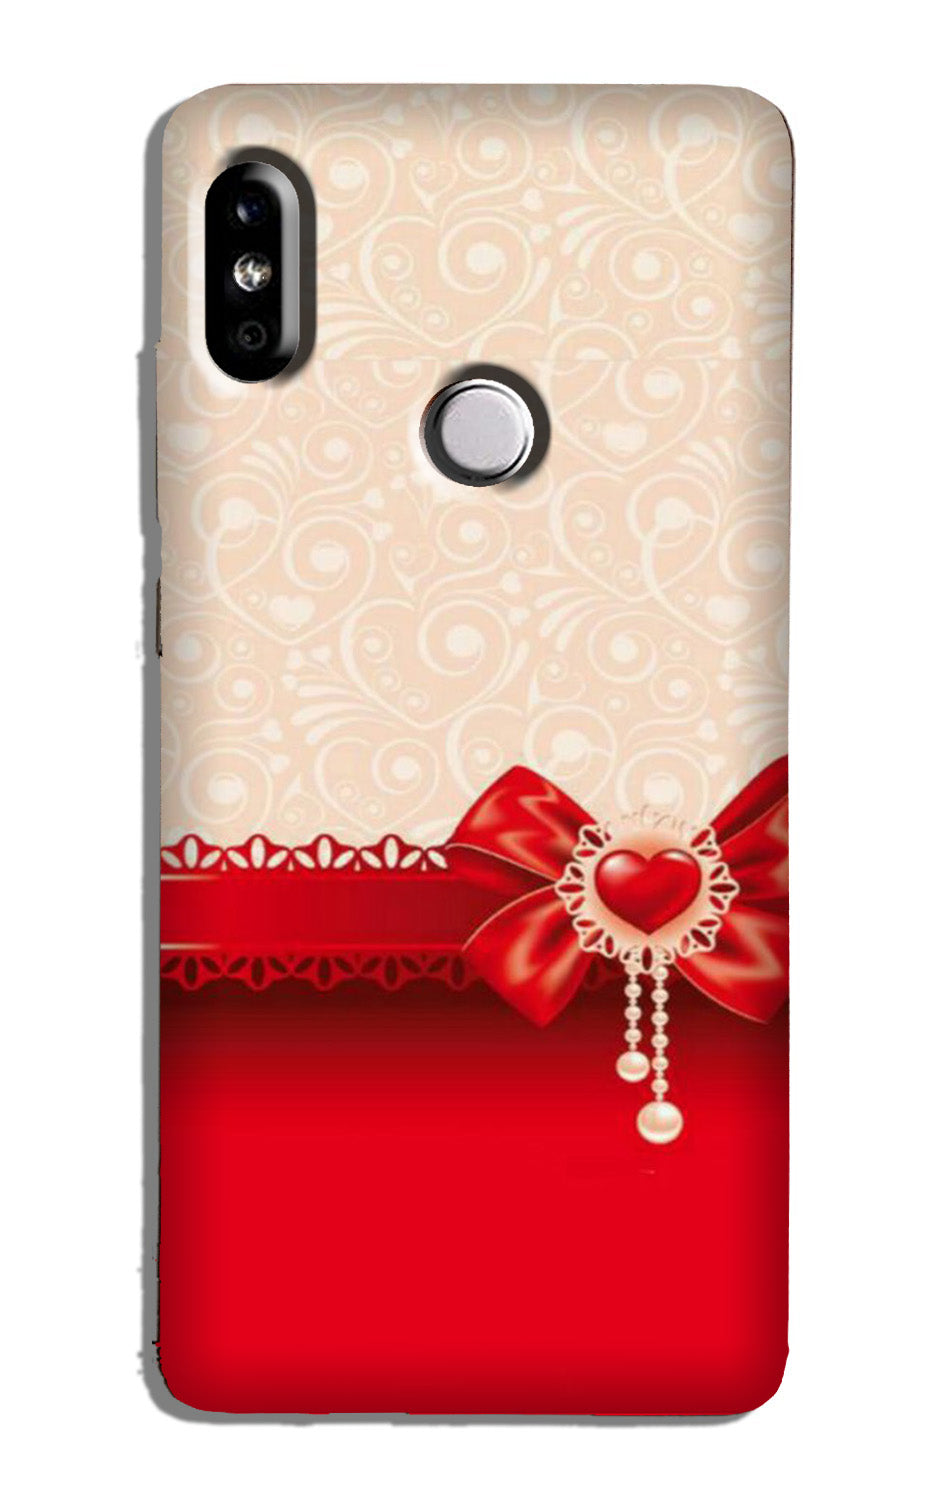 Gift Wrap3 Case for Redmi 6 Pro